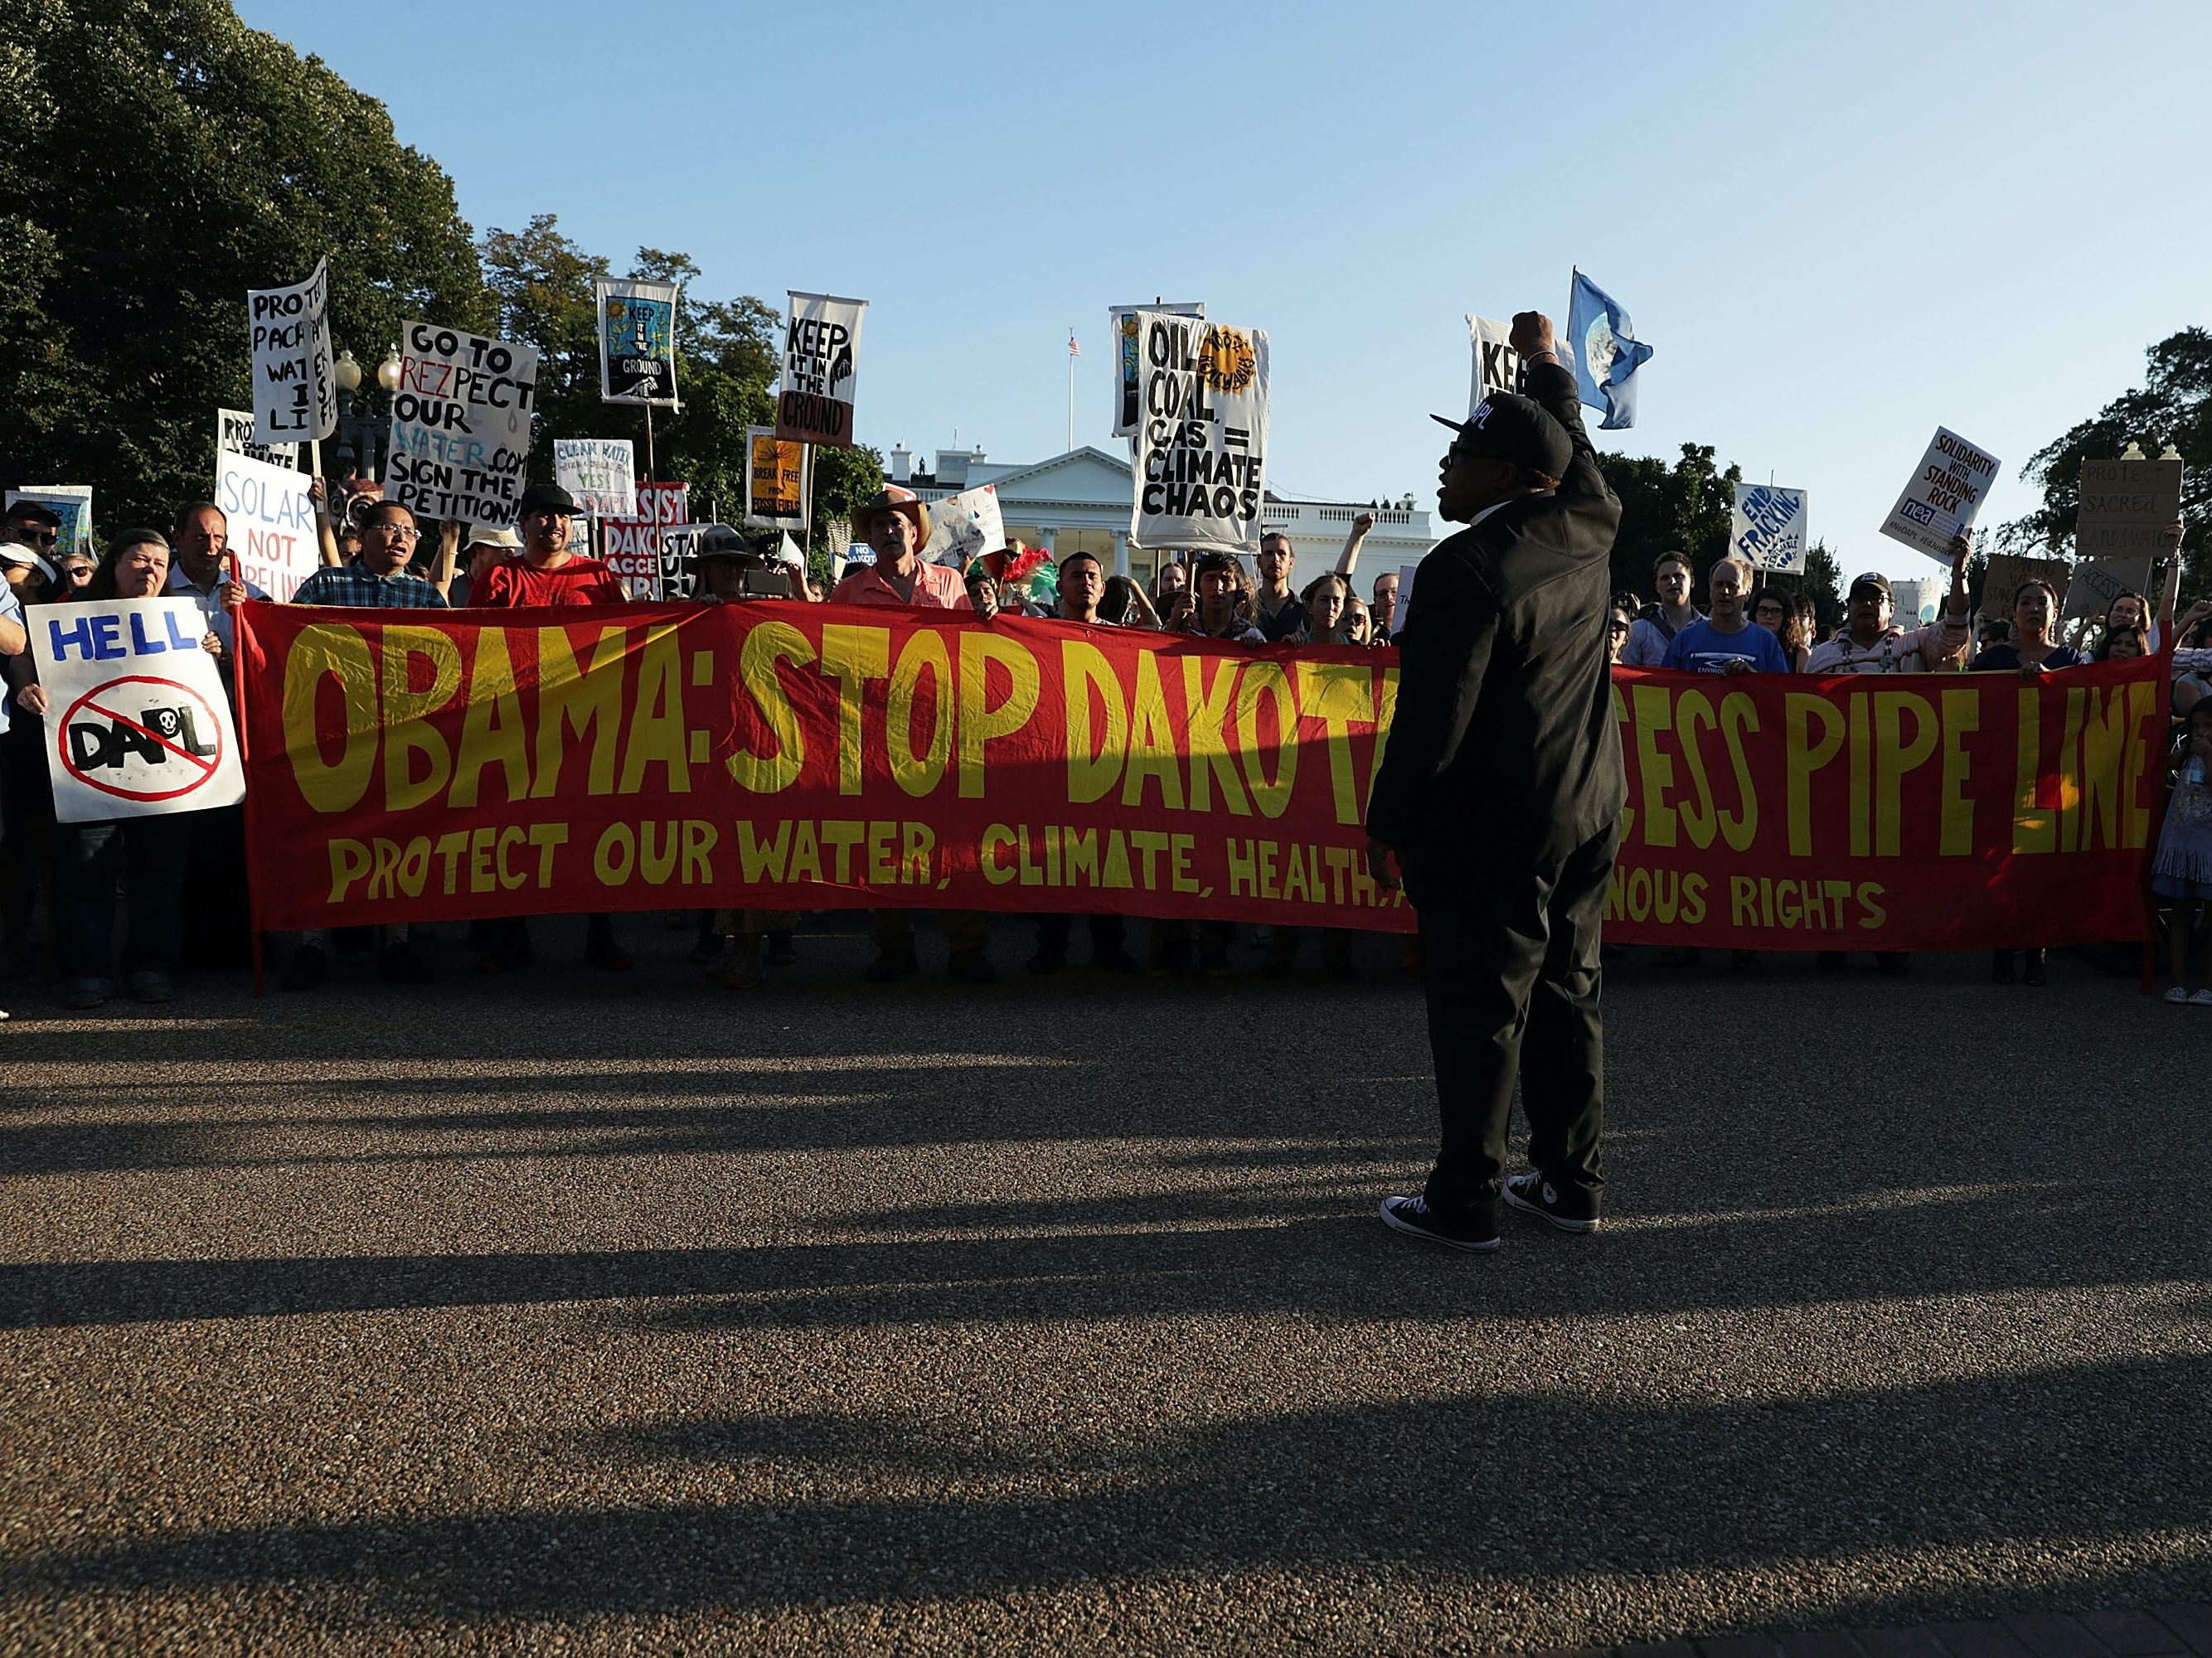 Activists gather in front of the White House during a rally against the Dakota Access Pipeline September 13, 2016 in Washington, DC. Activists held a rally to call on President Barack Obama to stop the Dakota Access Pipeline.